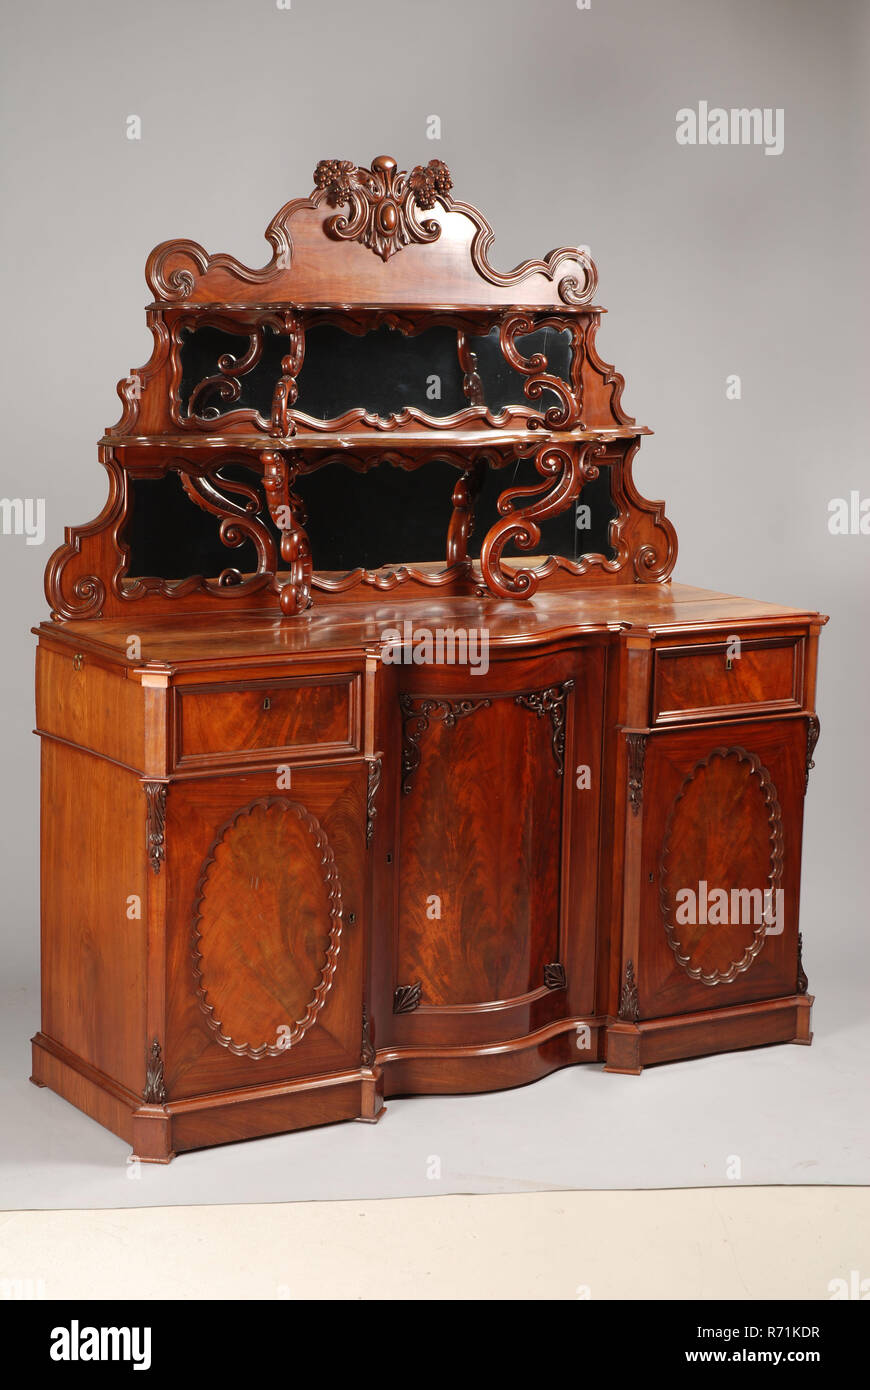 Neo Rococo Dining Room Buffet Sideboard Cupboard Cabinet Furniture Furniture Interior Design Wood Mahogany Oak Wood Brass Glass Neo Rococo Dining Room Buffet With Upright With Two Shelves Supported By Volutes Back Wall With